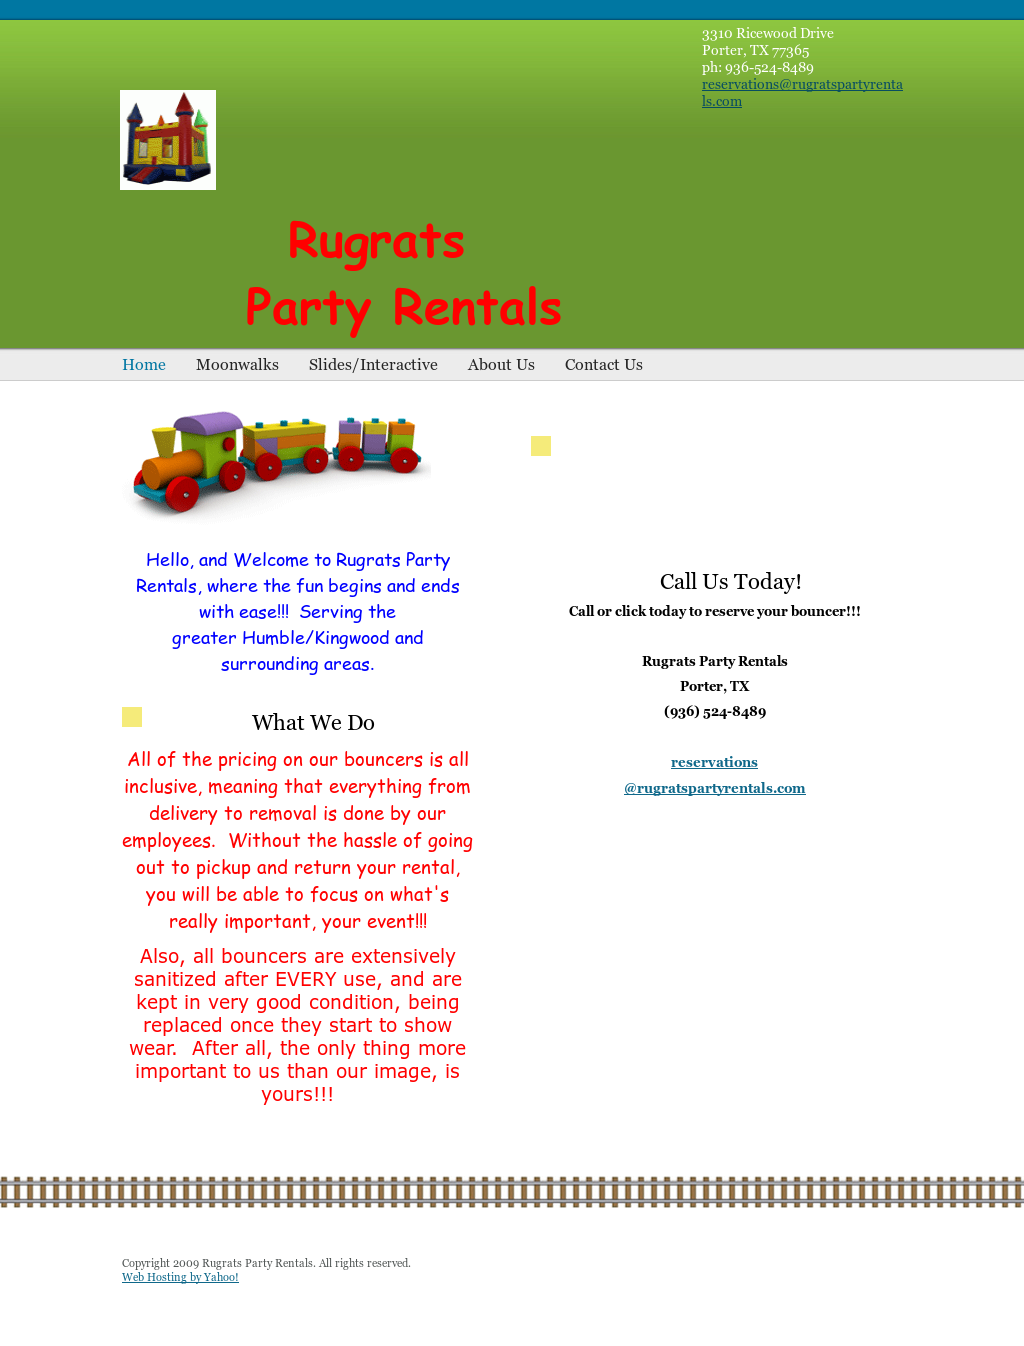 Rugrats Party Rentals Competitors, Revenue and Employees